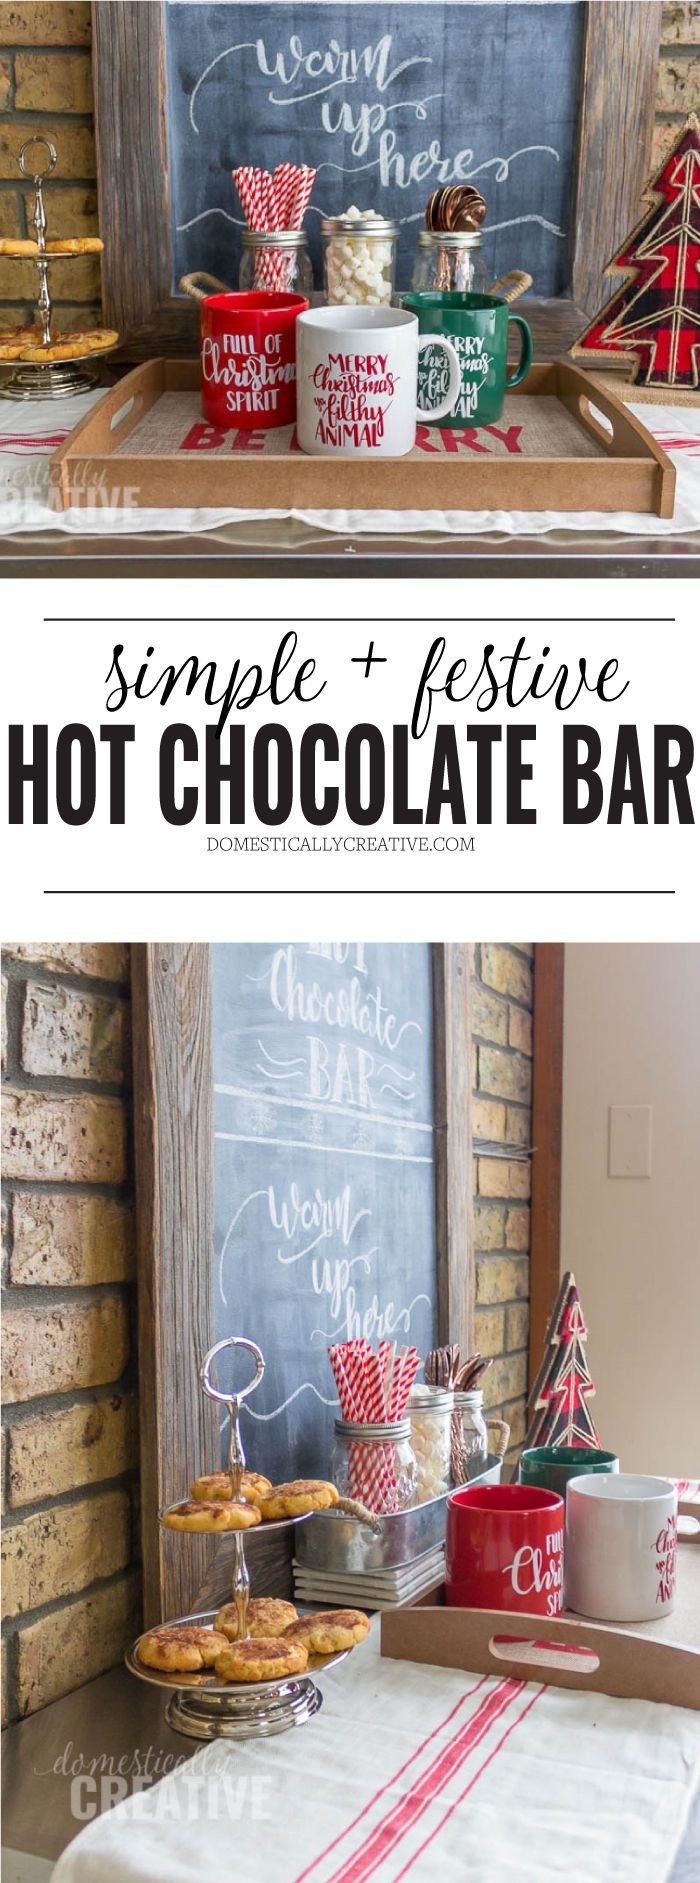 Simple hot chocolate bar #hotchocolatebar #hotcocoabar #coffeebar